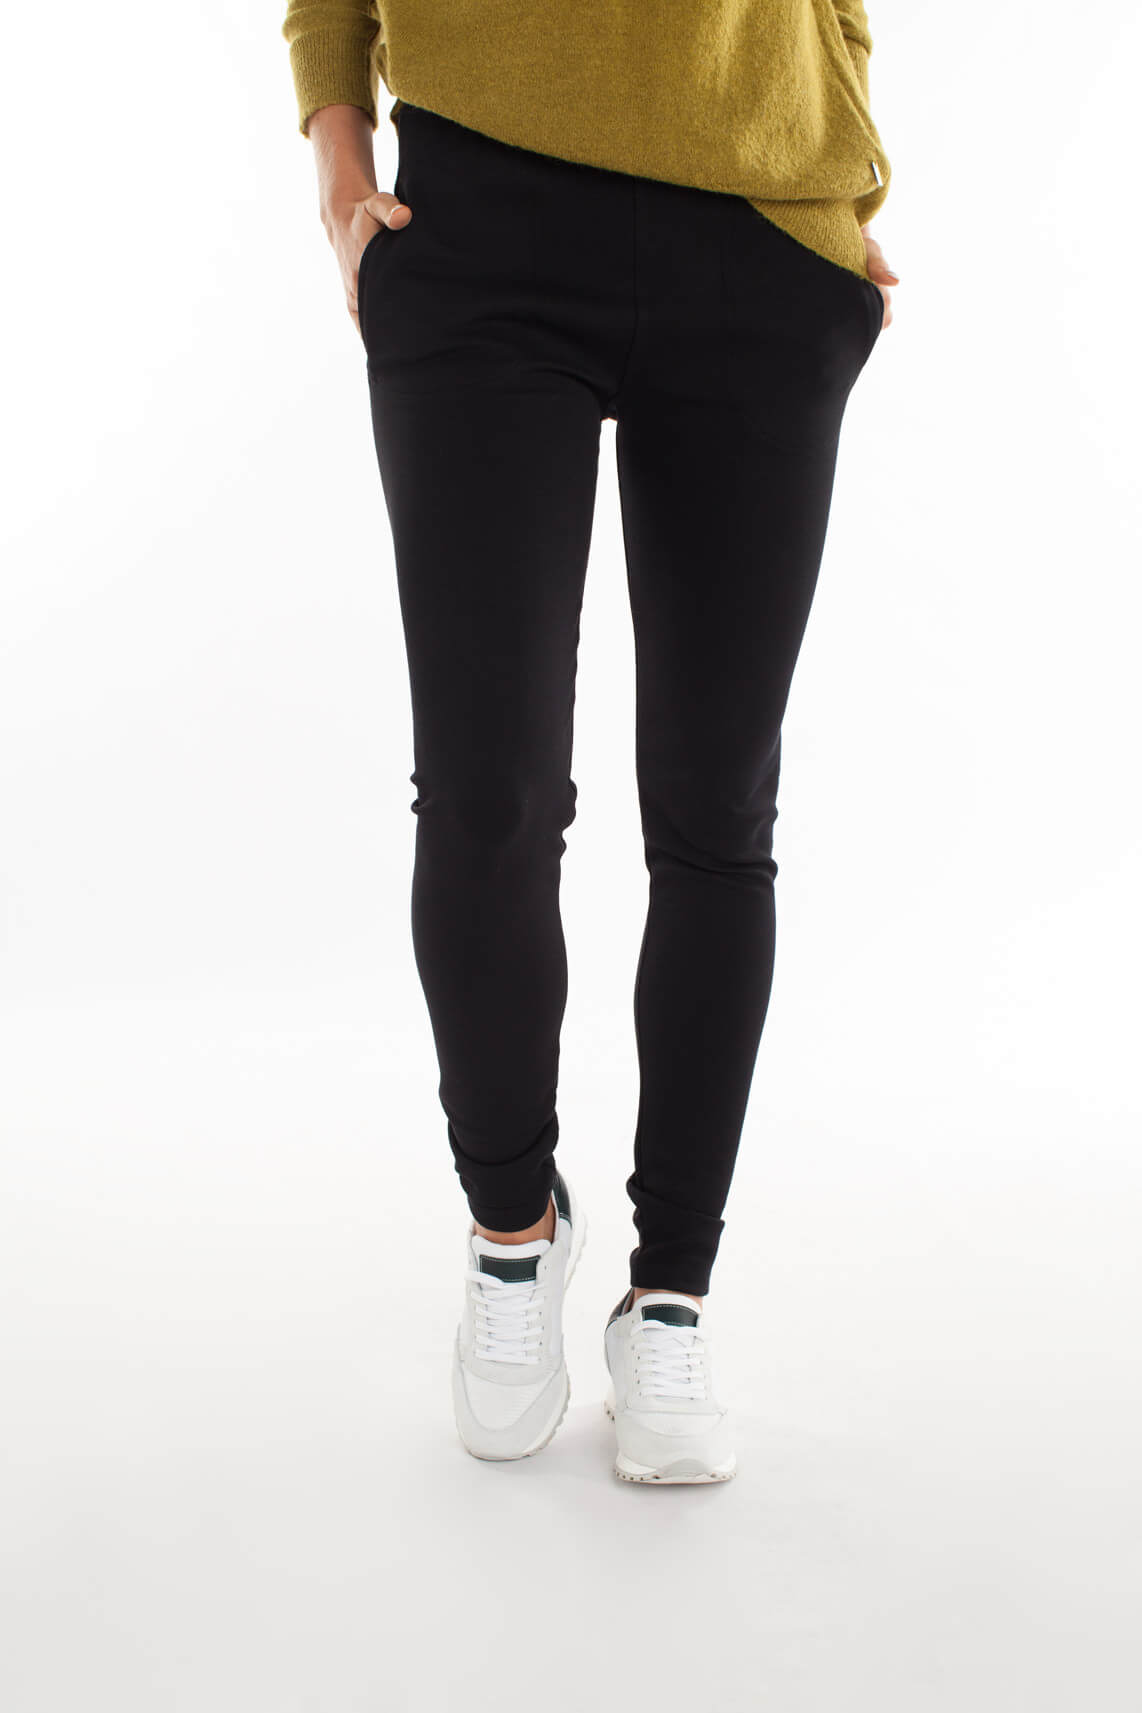 By-Bar Dames Mon comfortabele pantalon zwart